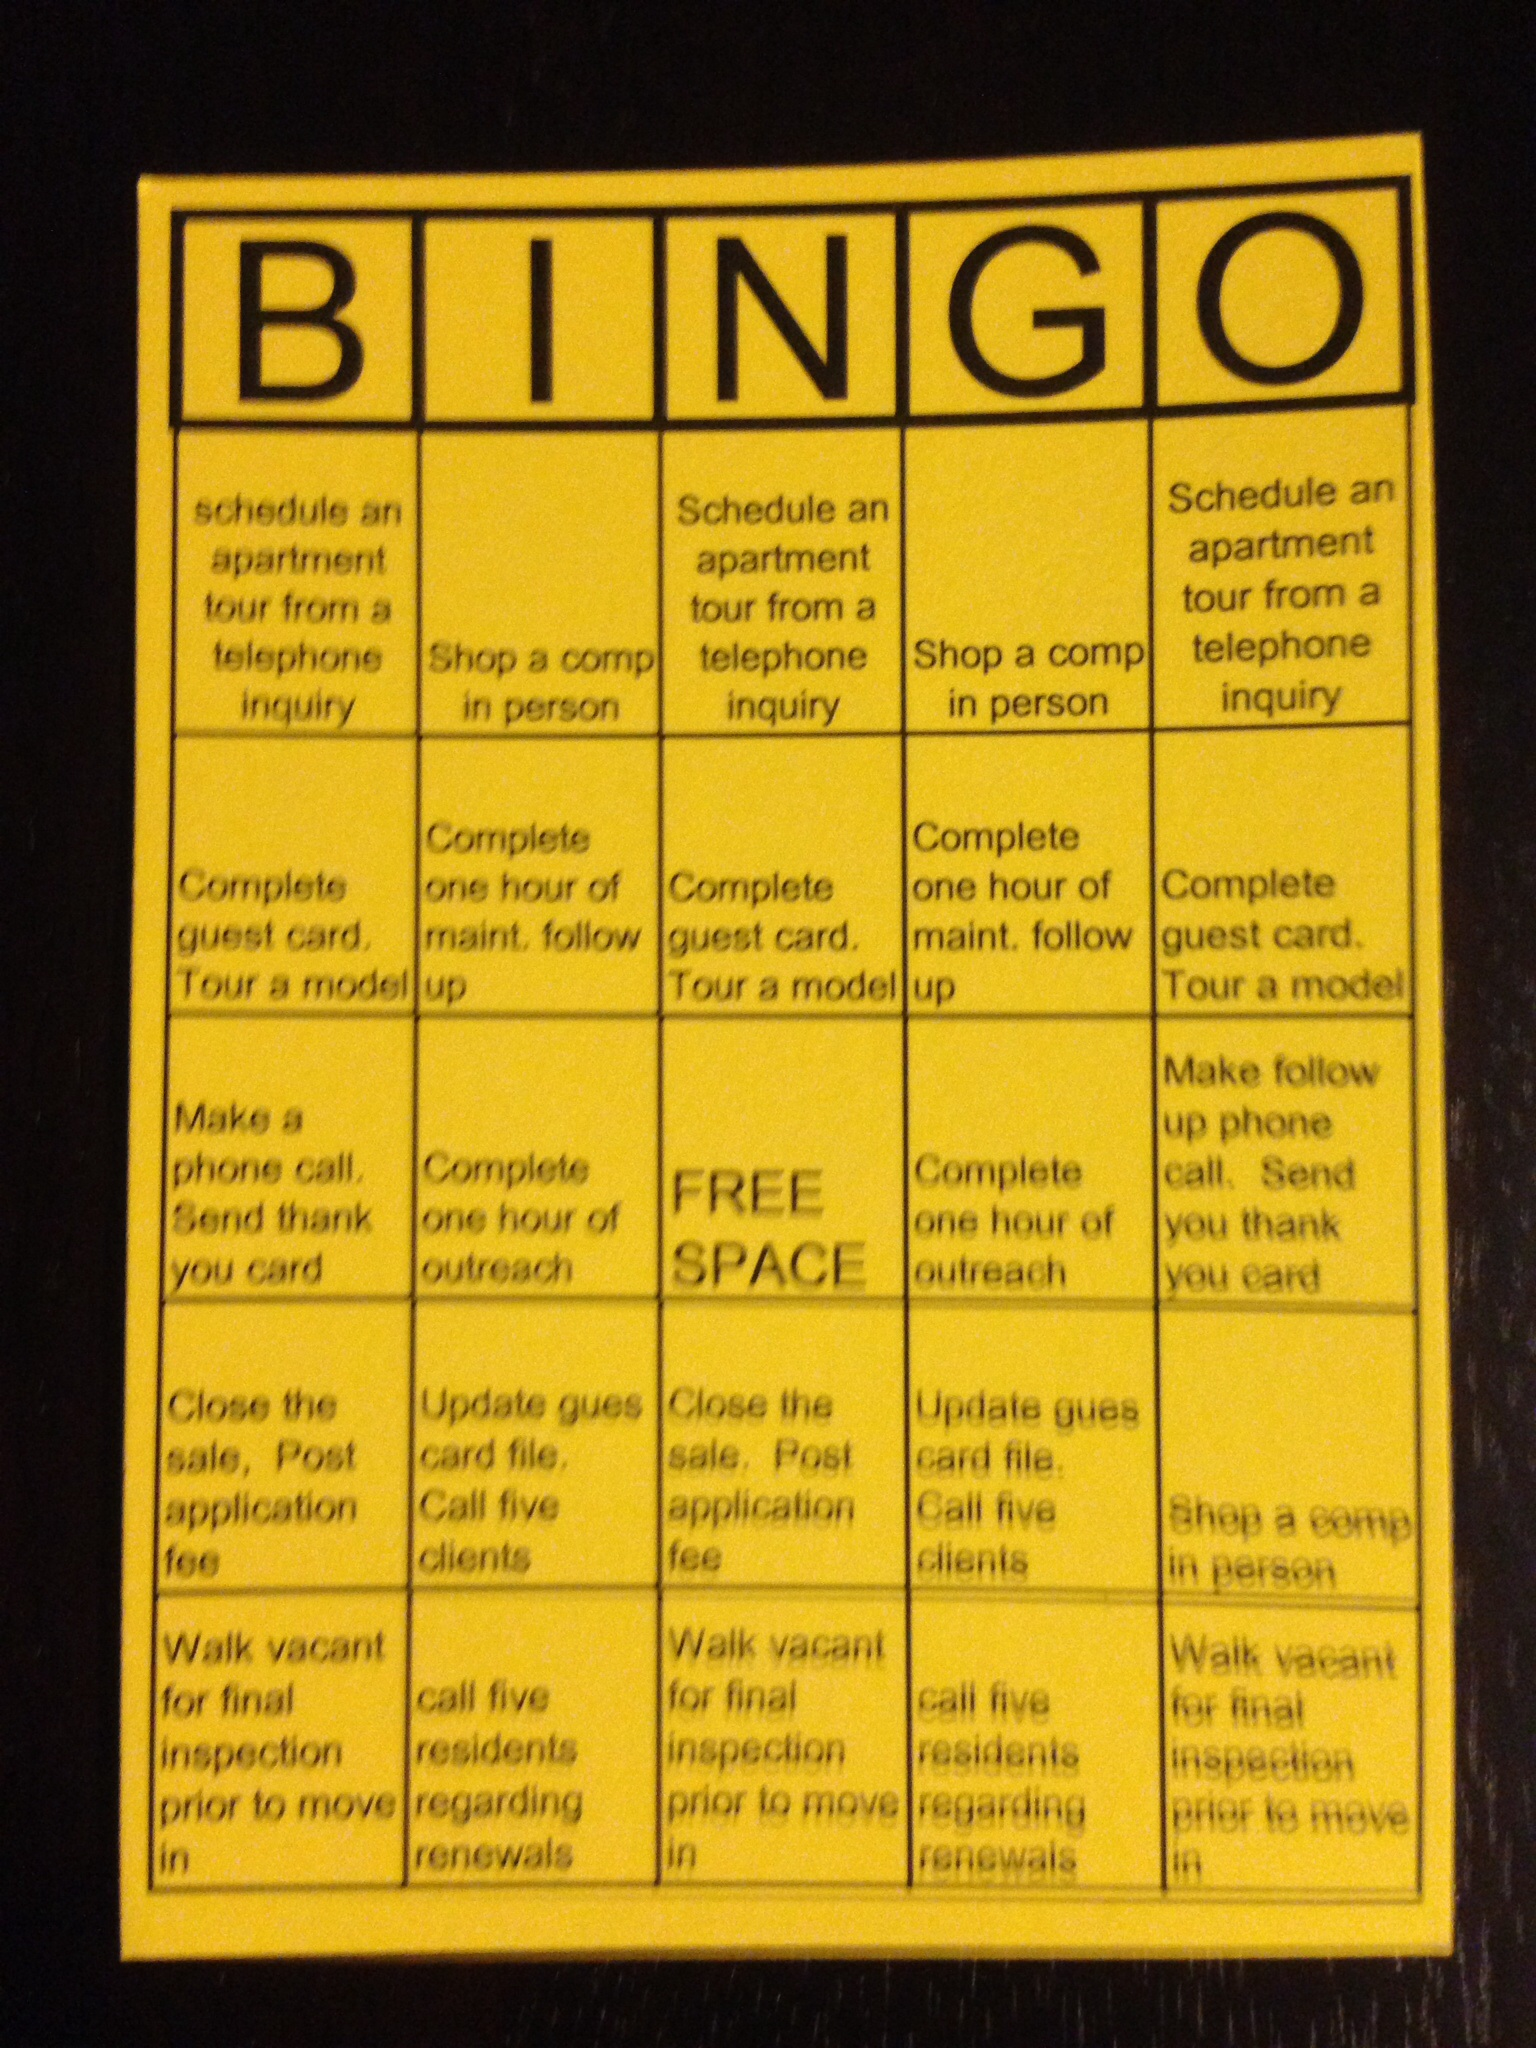 bingo a theme for daily tasks multifamily is national bingo month creating a bingo card leasing maintenance or administrative tasks can create a fun environment for some team